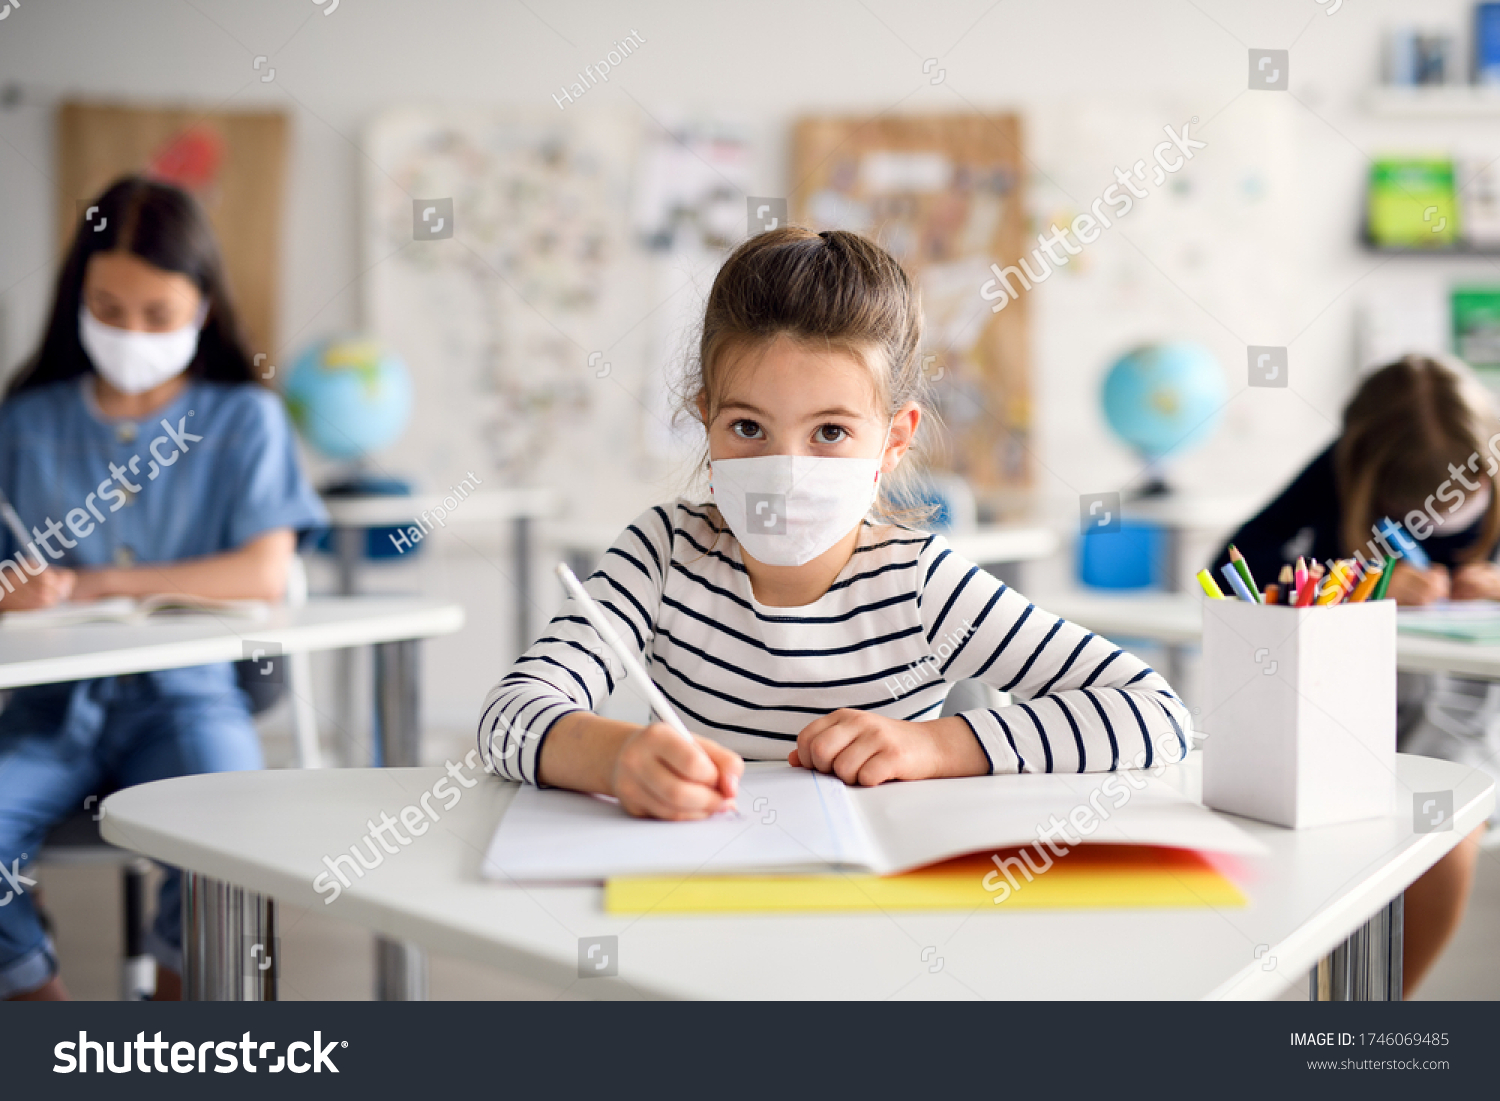 Child with face mask back at school after covid-19 quarantine and lockdown, writing. #1746069485